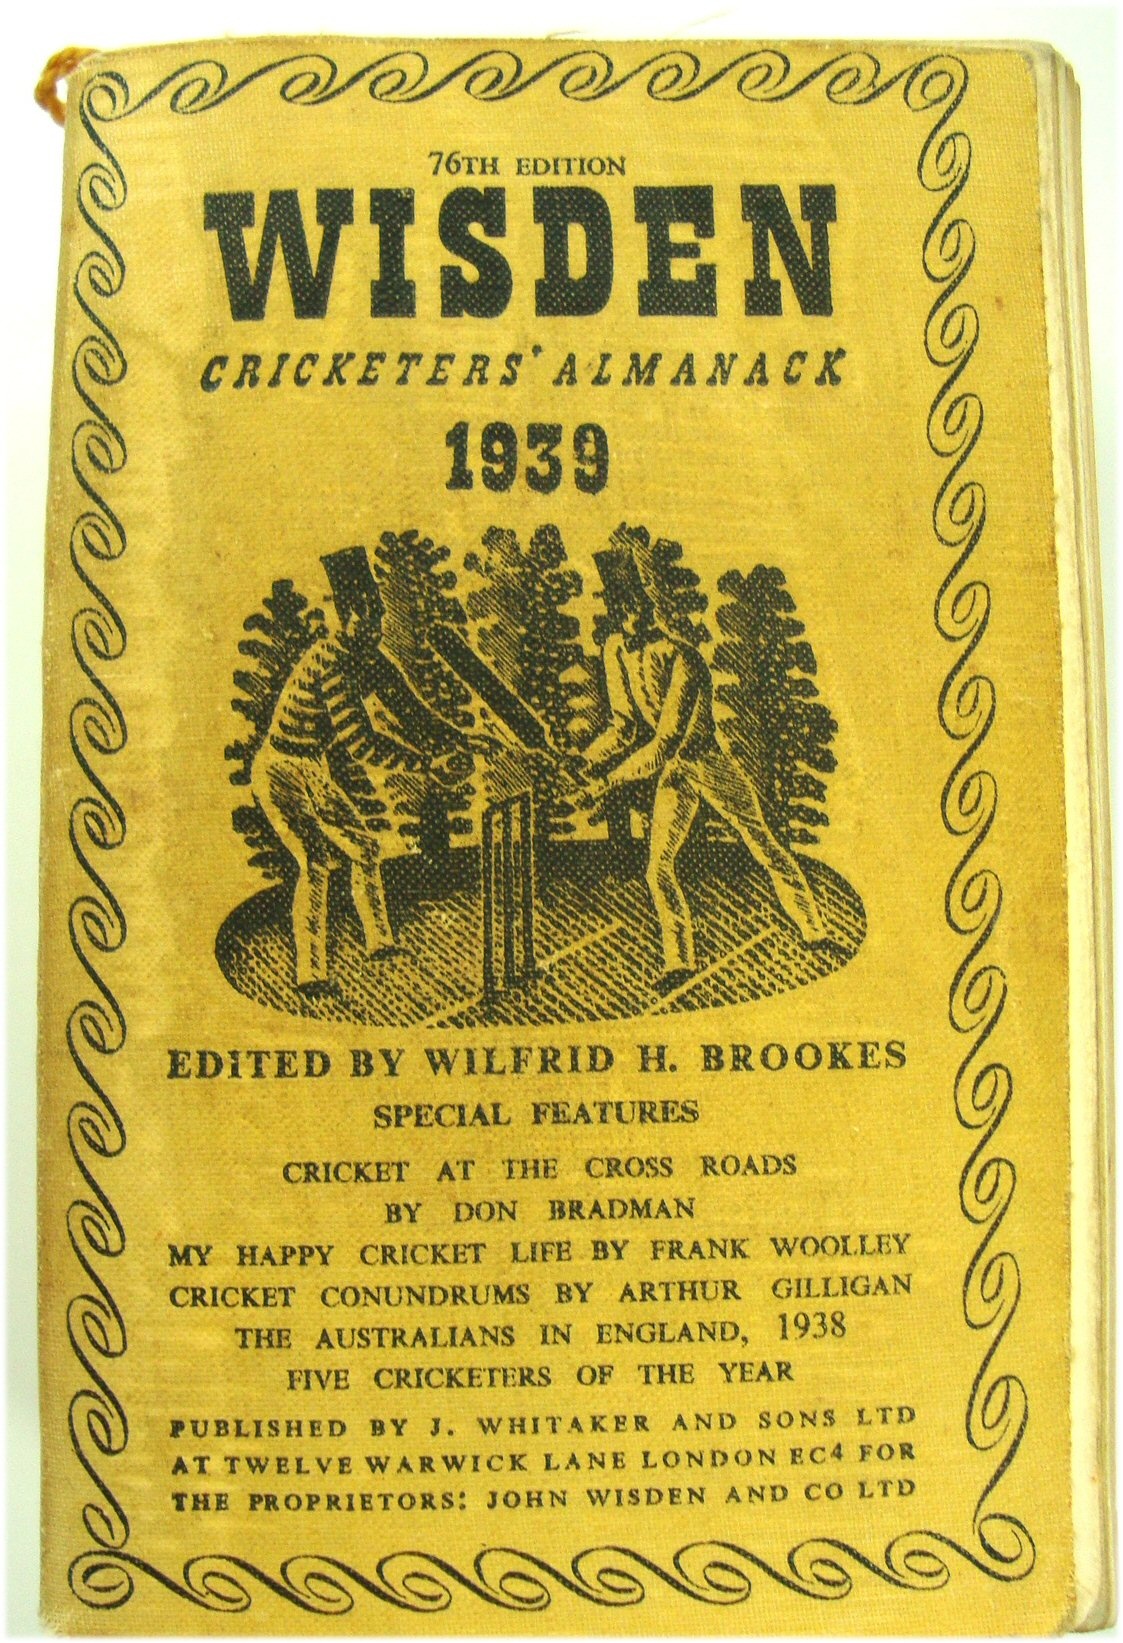 Image for 76th Year Wisden Cricketers' Almanack 1939